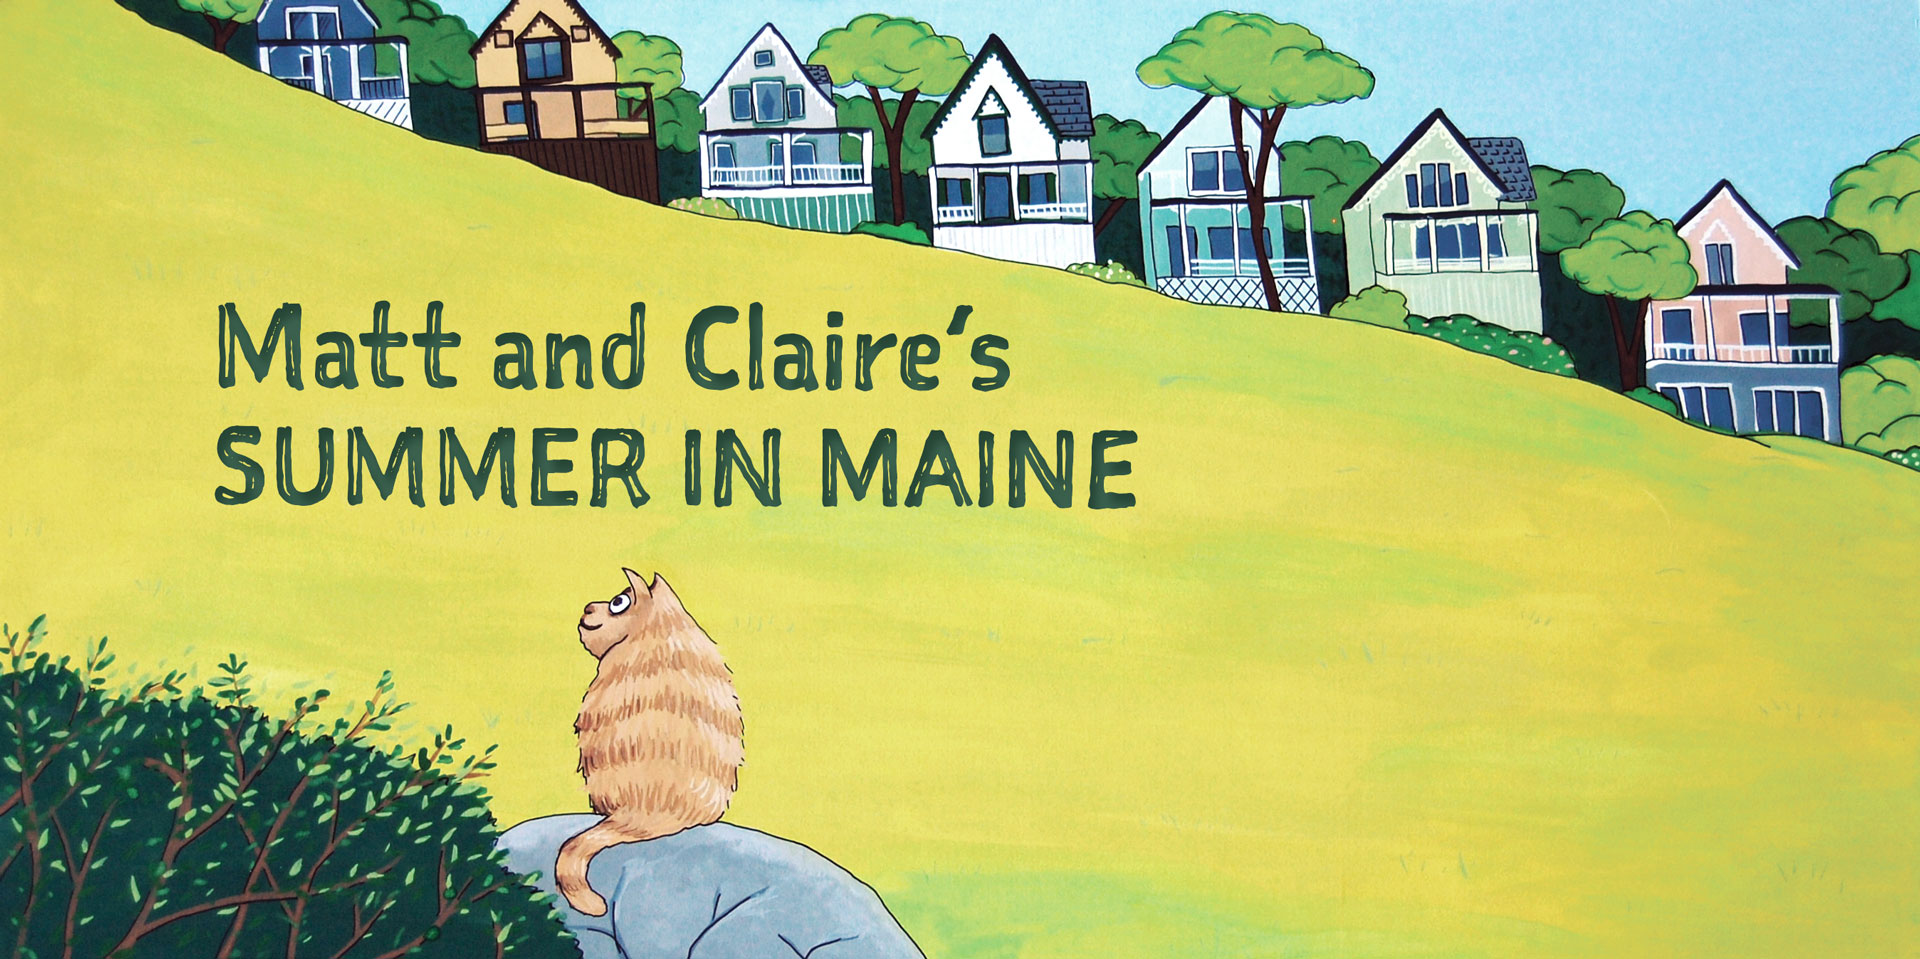 Matt and Claire's Summer in Maine